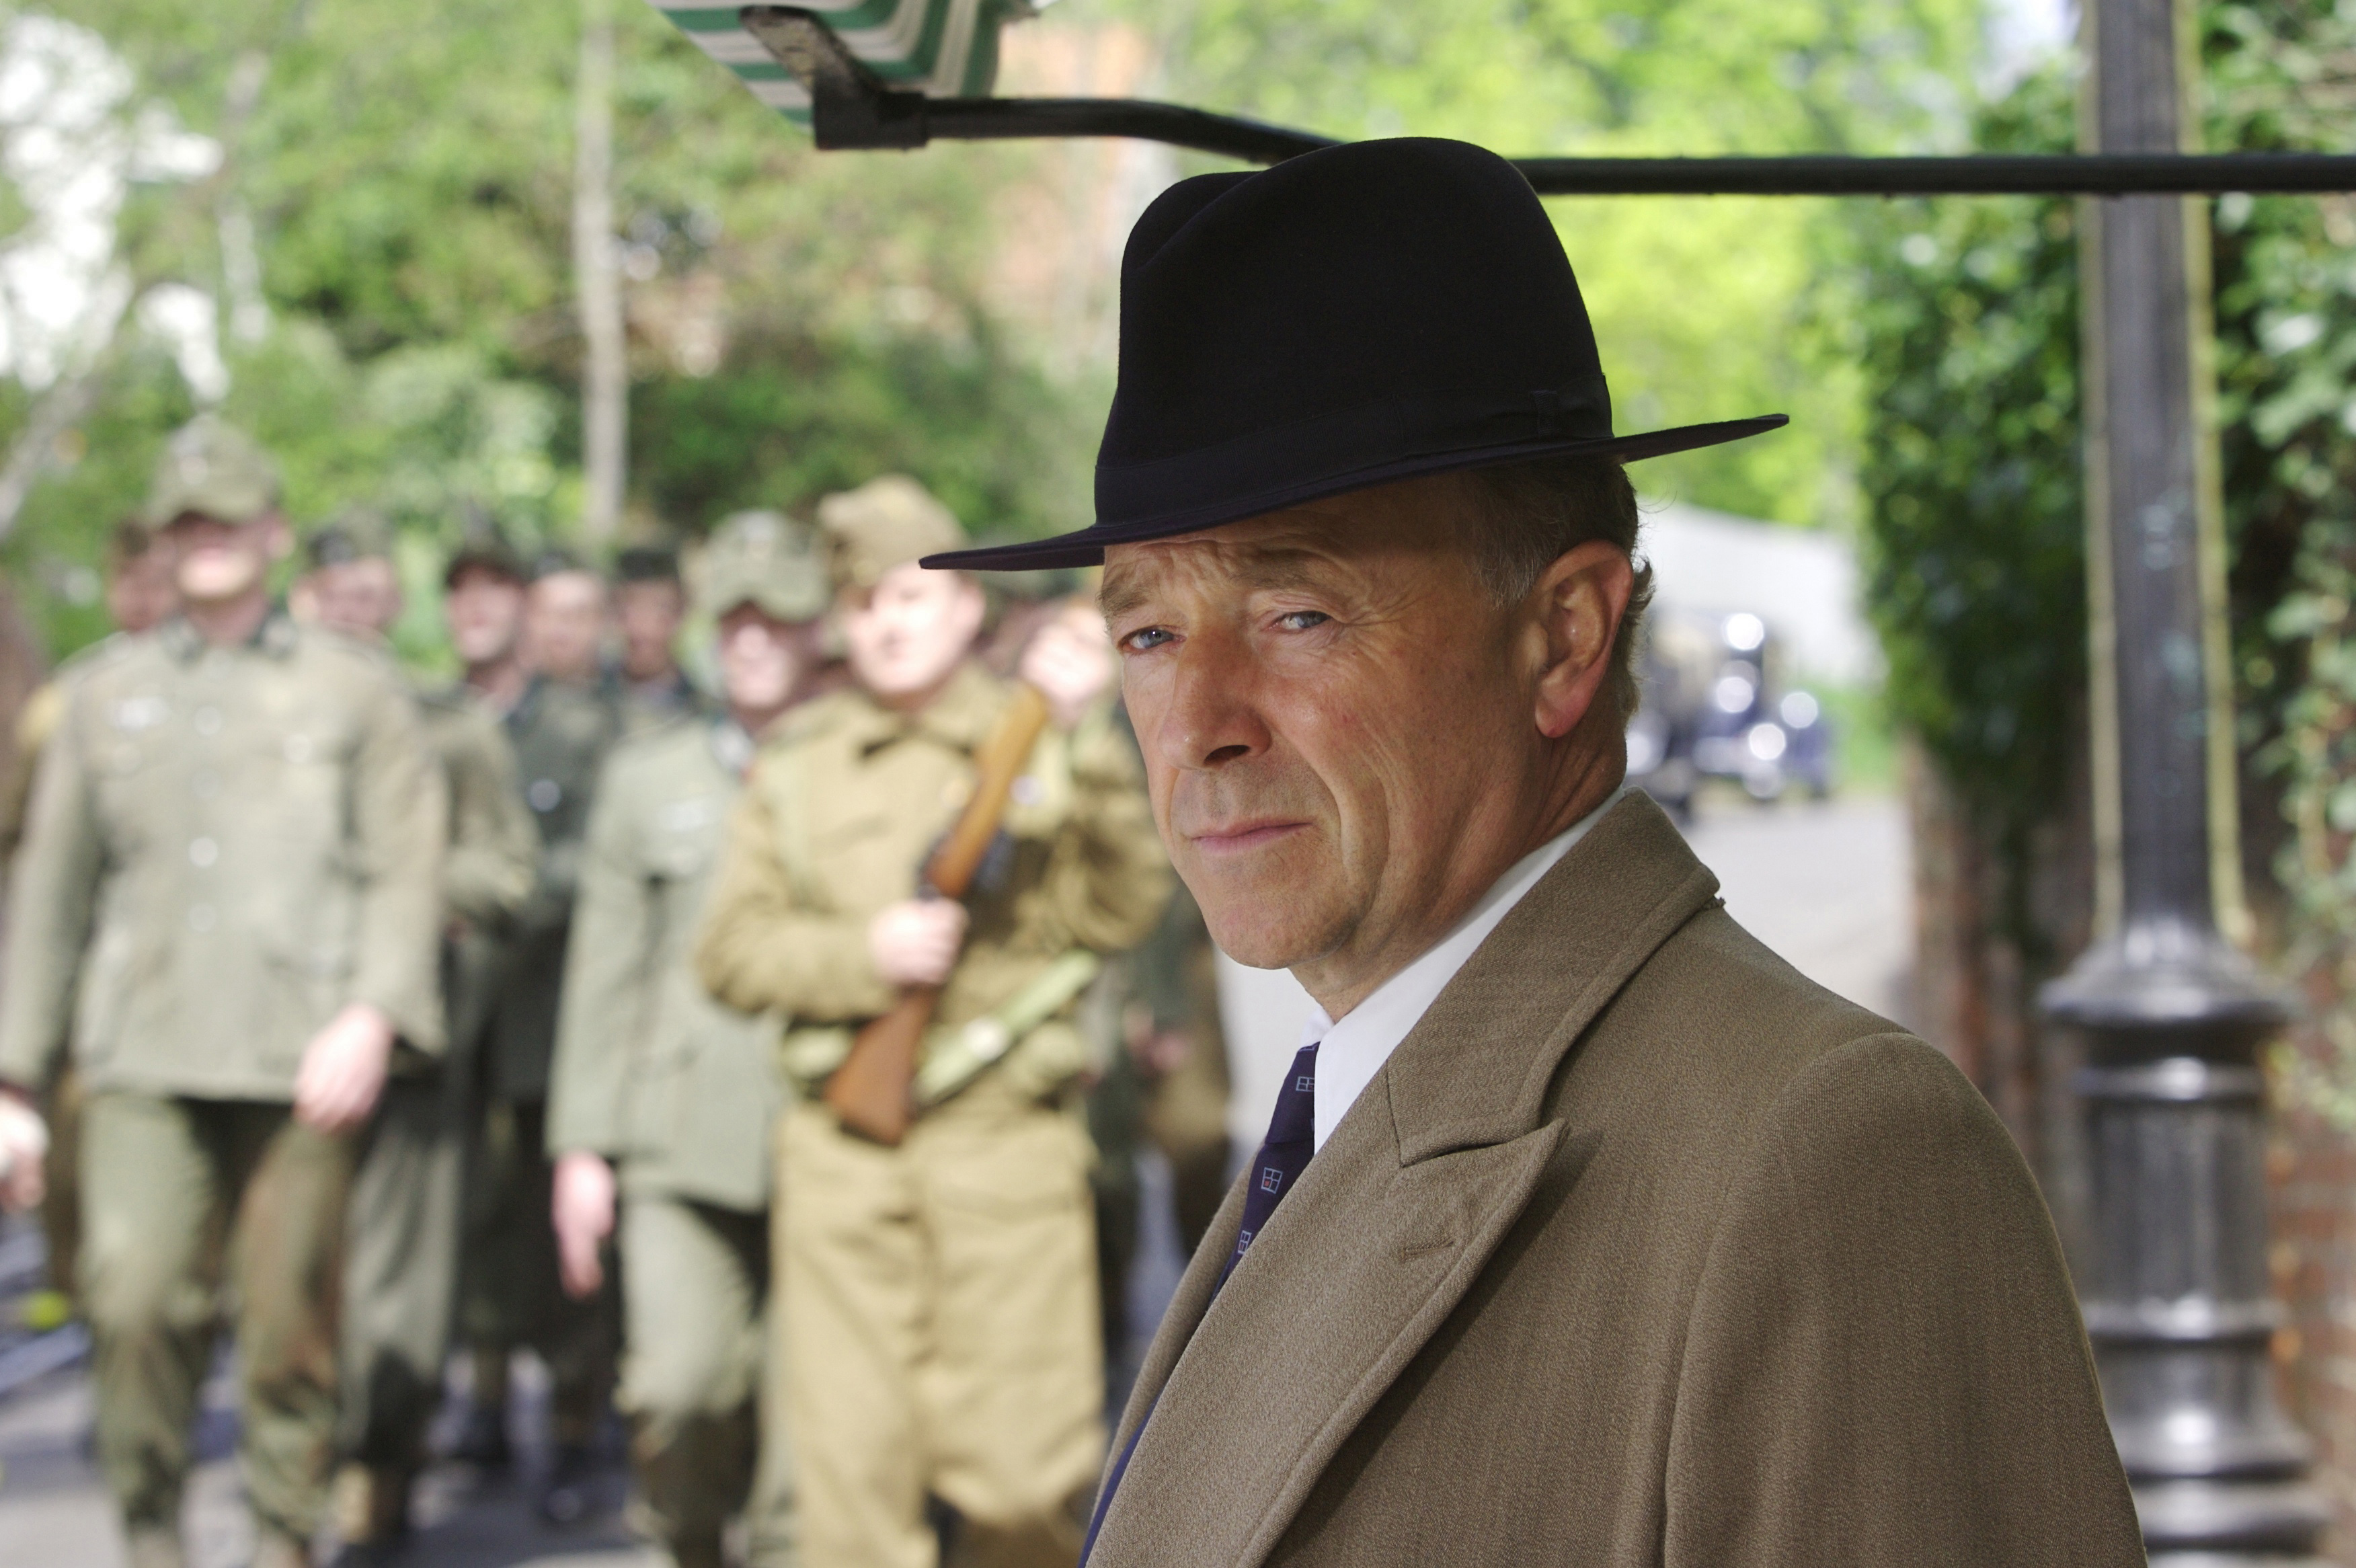 Foyle's War: PBS